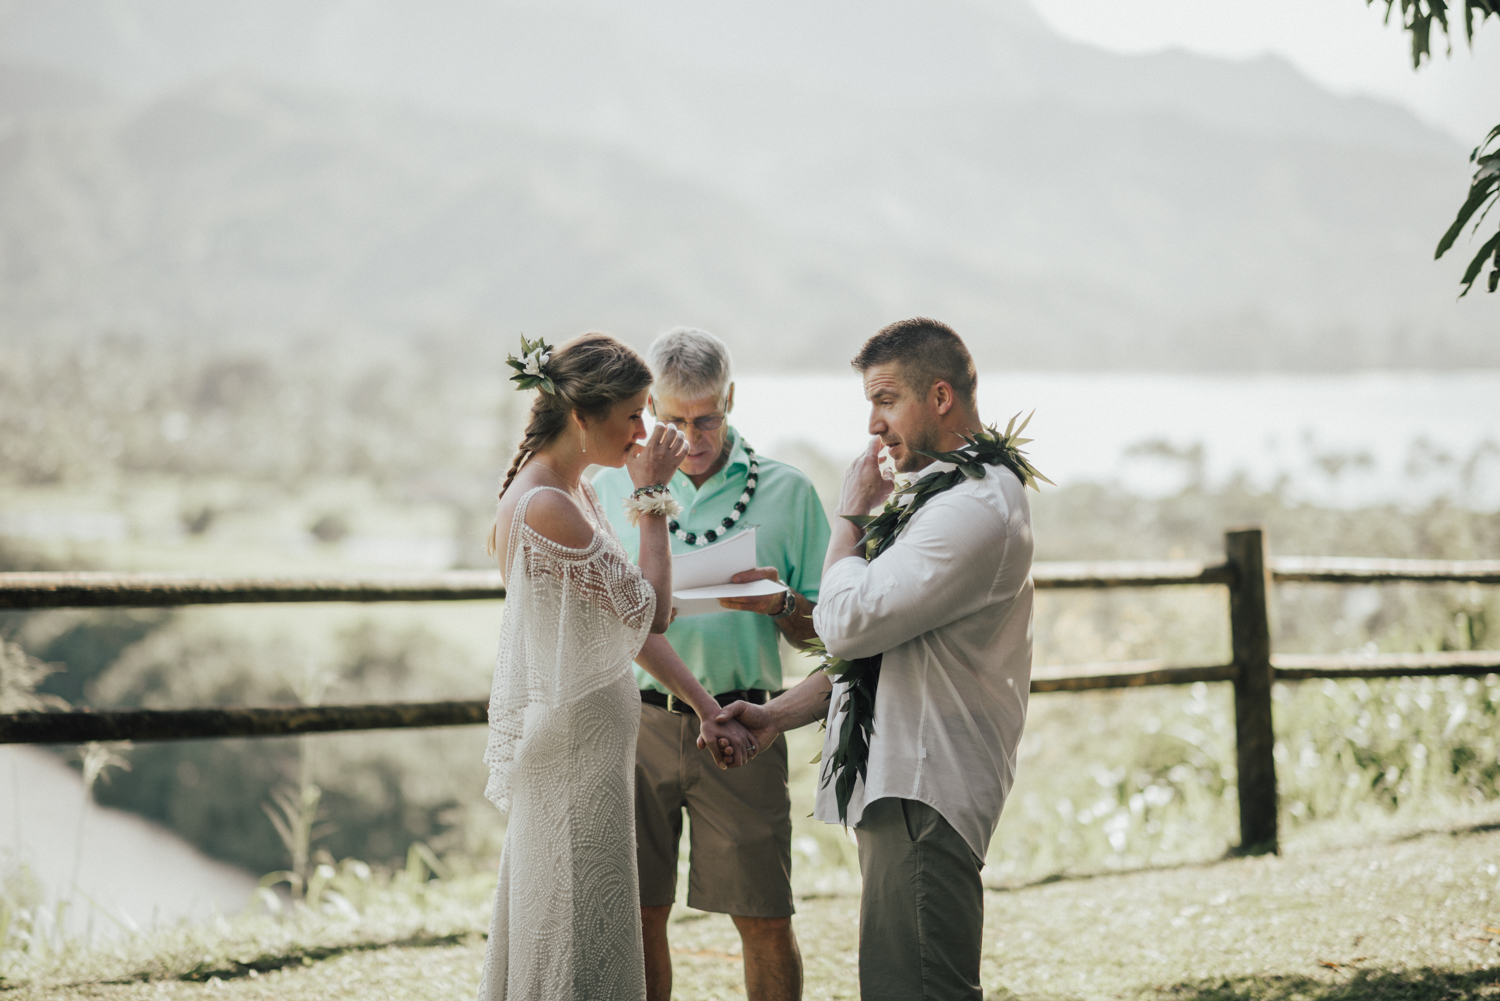 Kauai-elopement-photographer-37.jpg